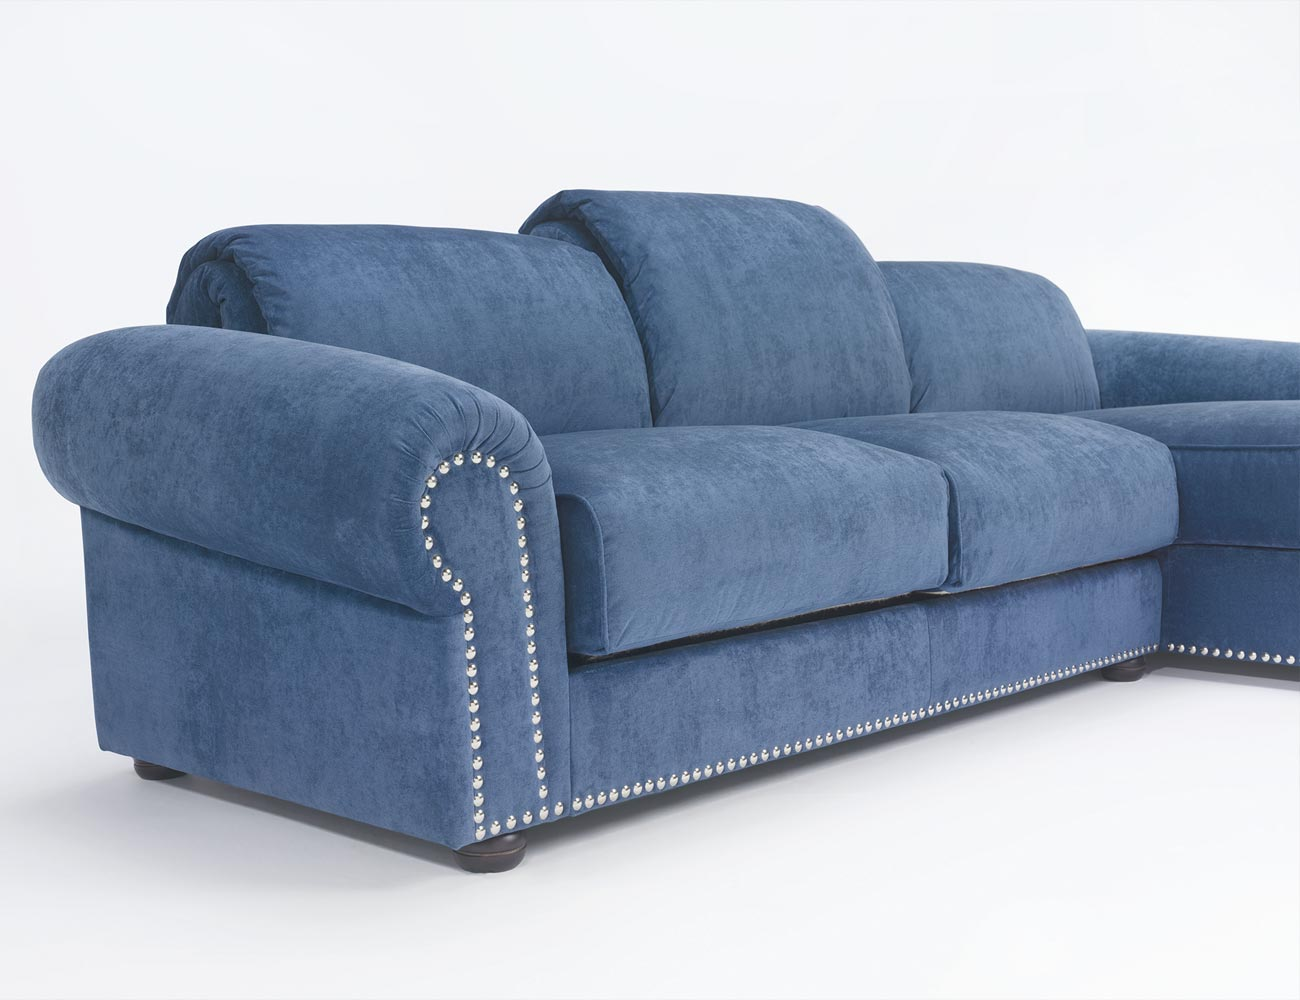 Sofa chaiselongue gran lujo decorativo azul 137